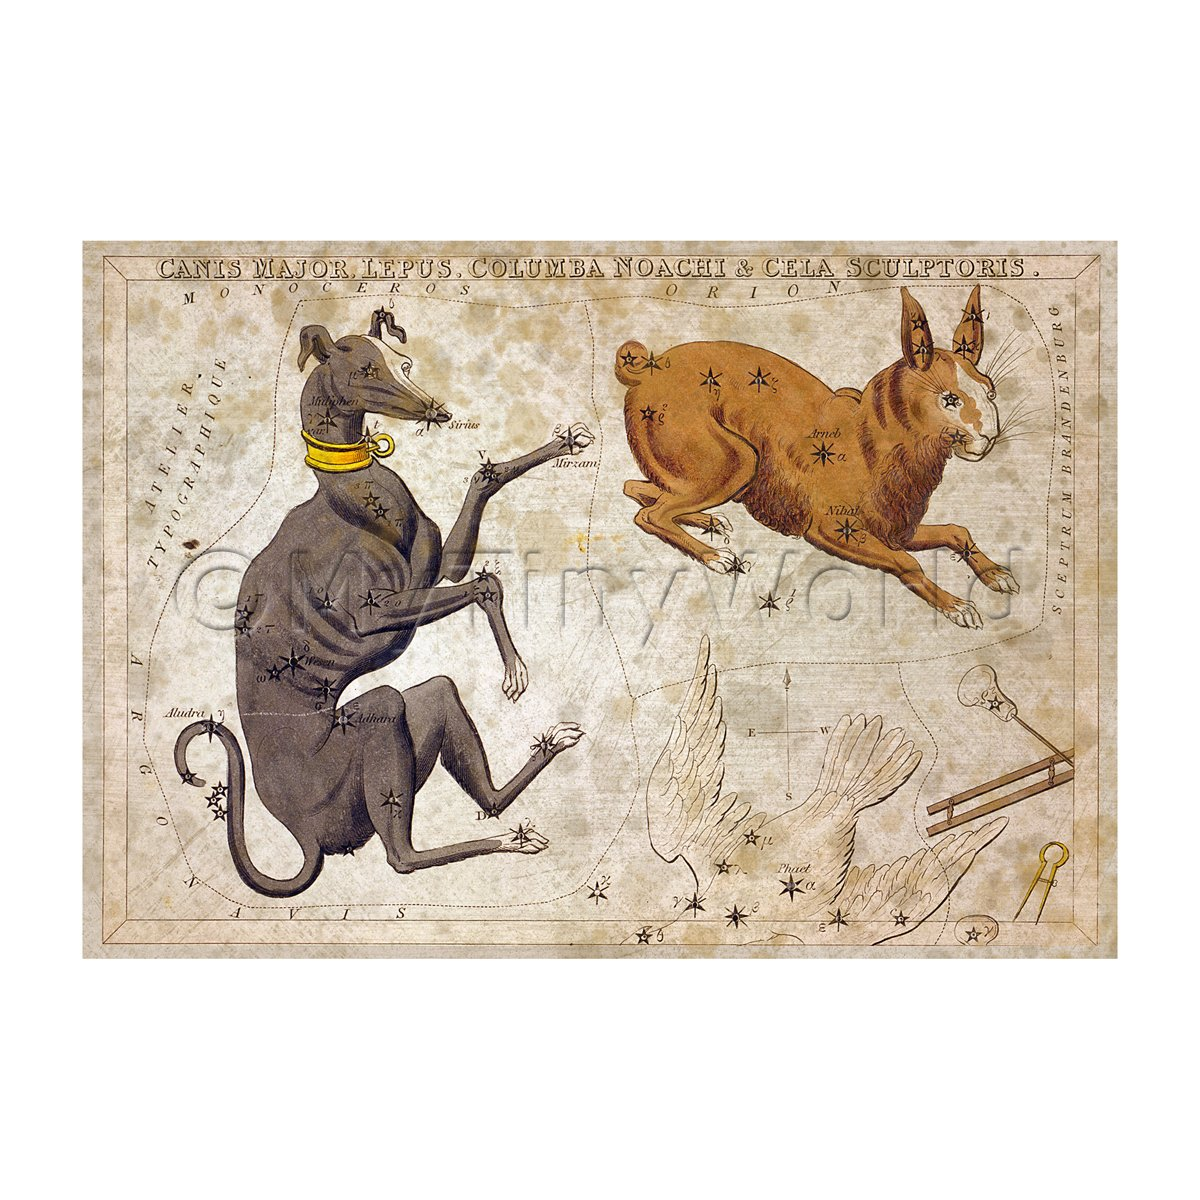 Dolls House Miniature Aged 1820s Star Map Depicting Canis Major, Lepus